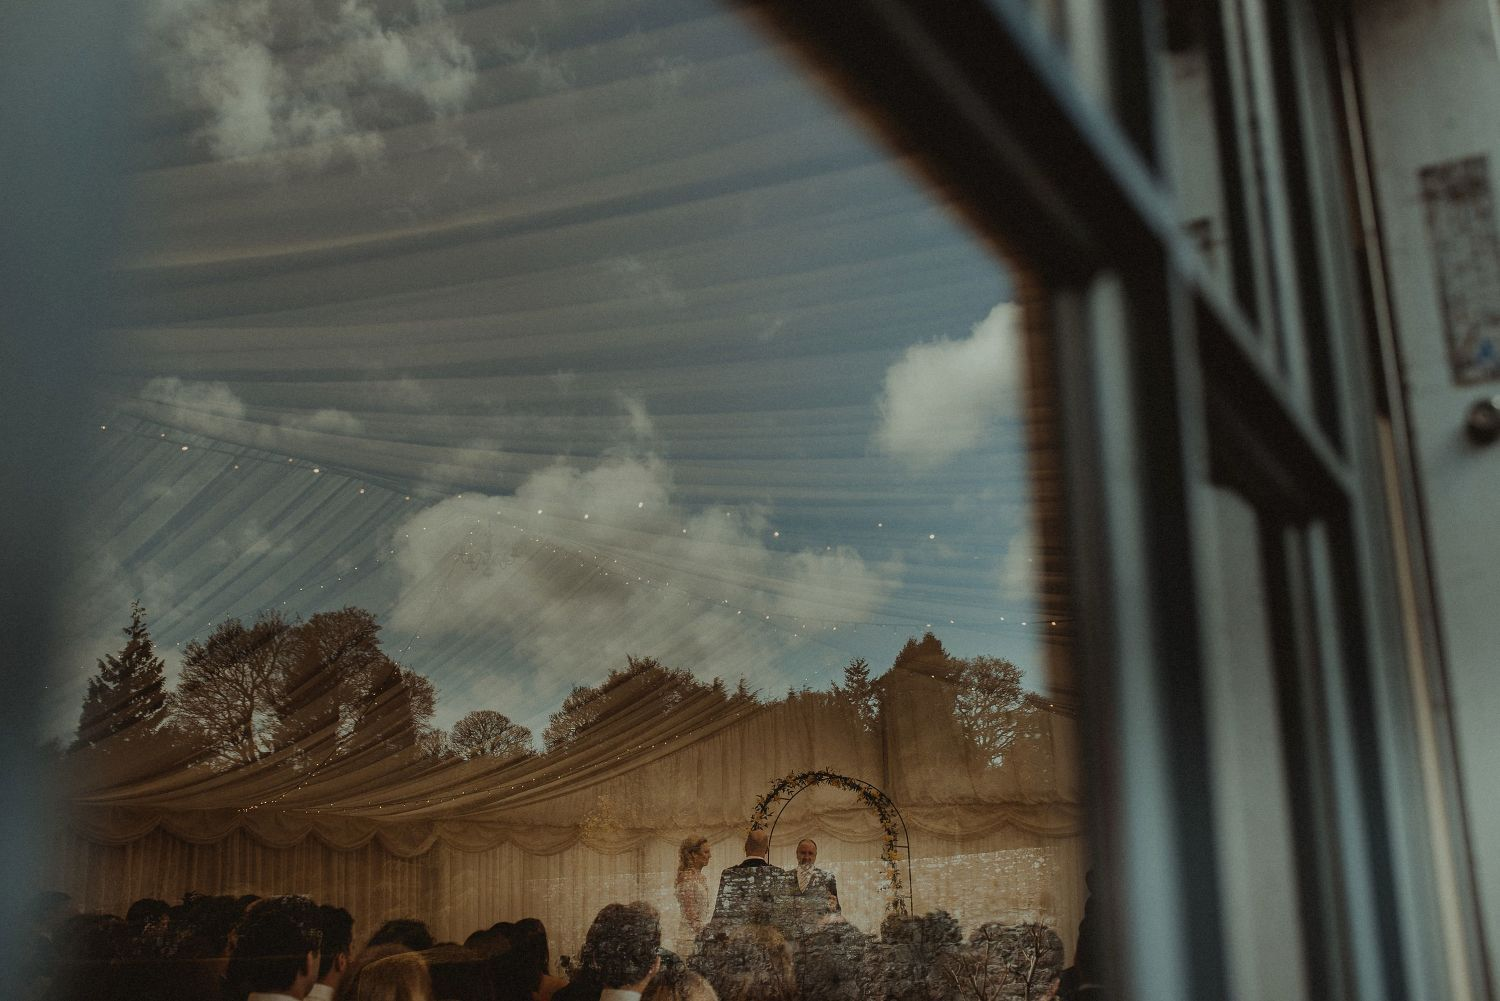 Reflection in wedding marquee window at Elsick House